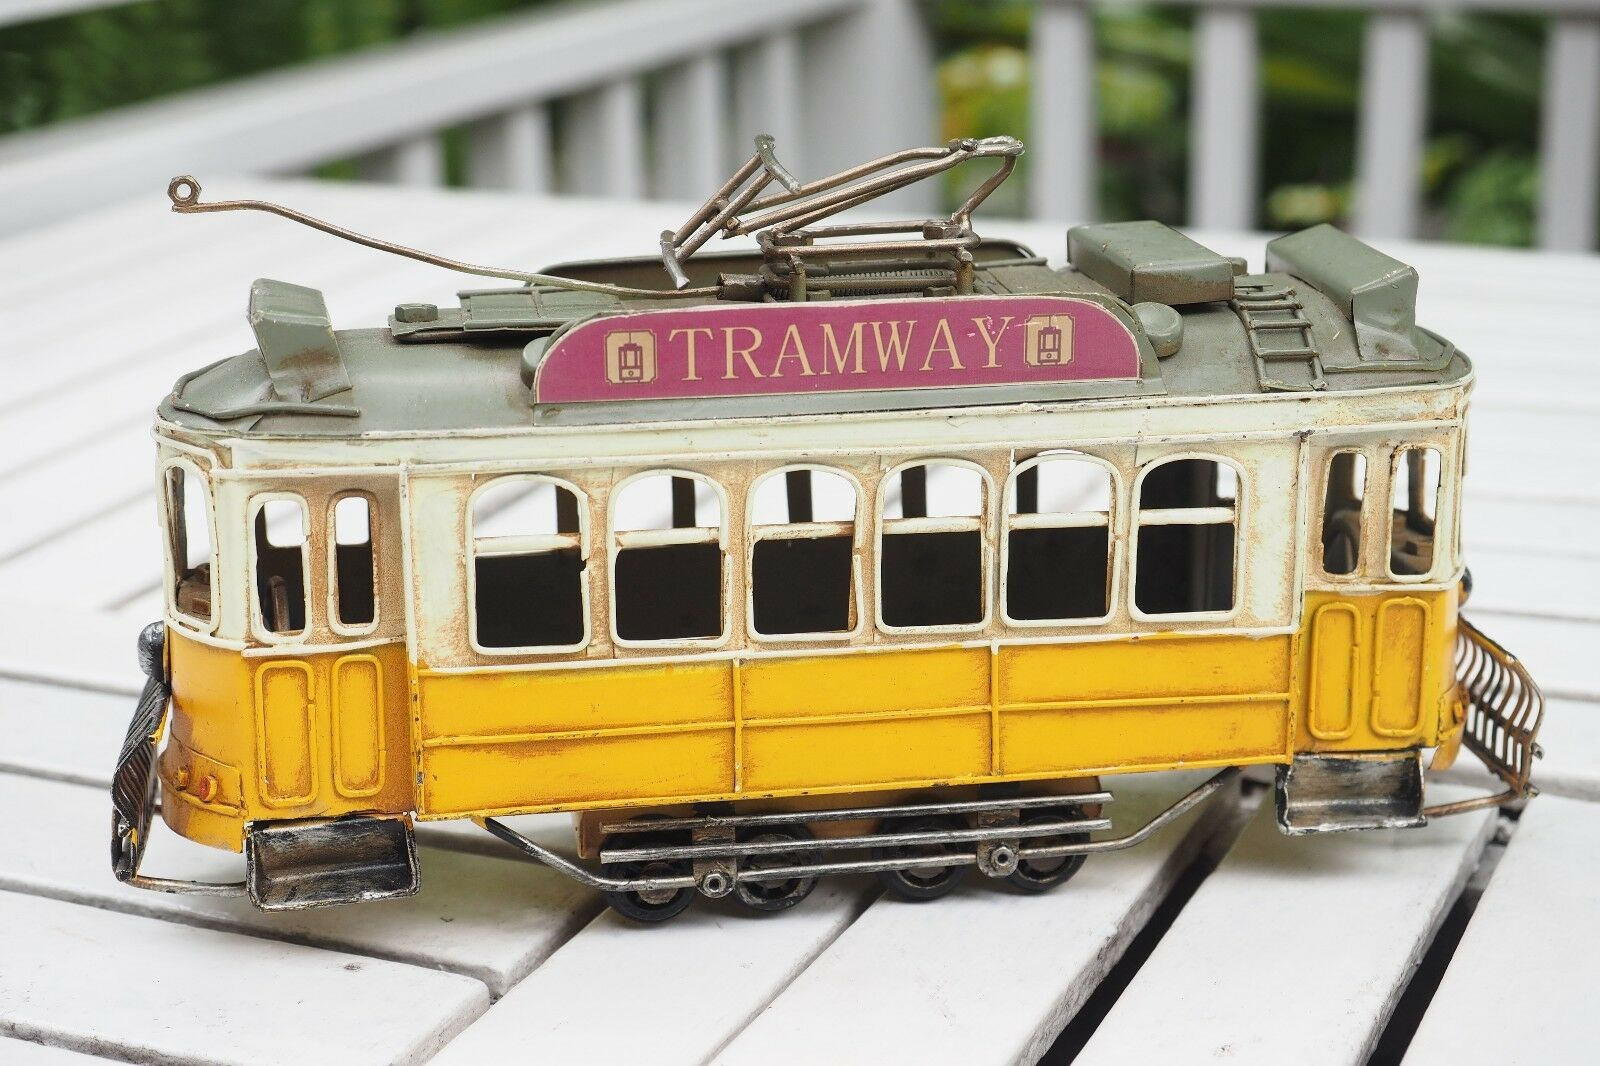 Retro Tram Model HandCraft Collect Decor Diecast Metal Vintage Vehicle Toy Gift